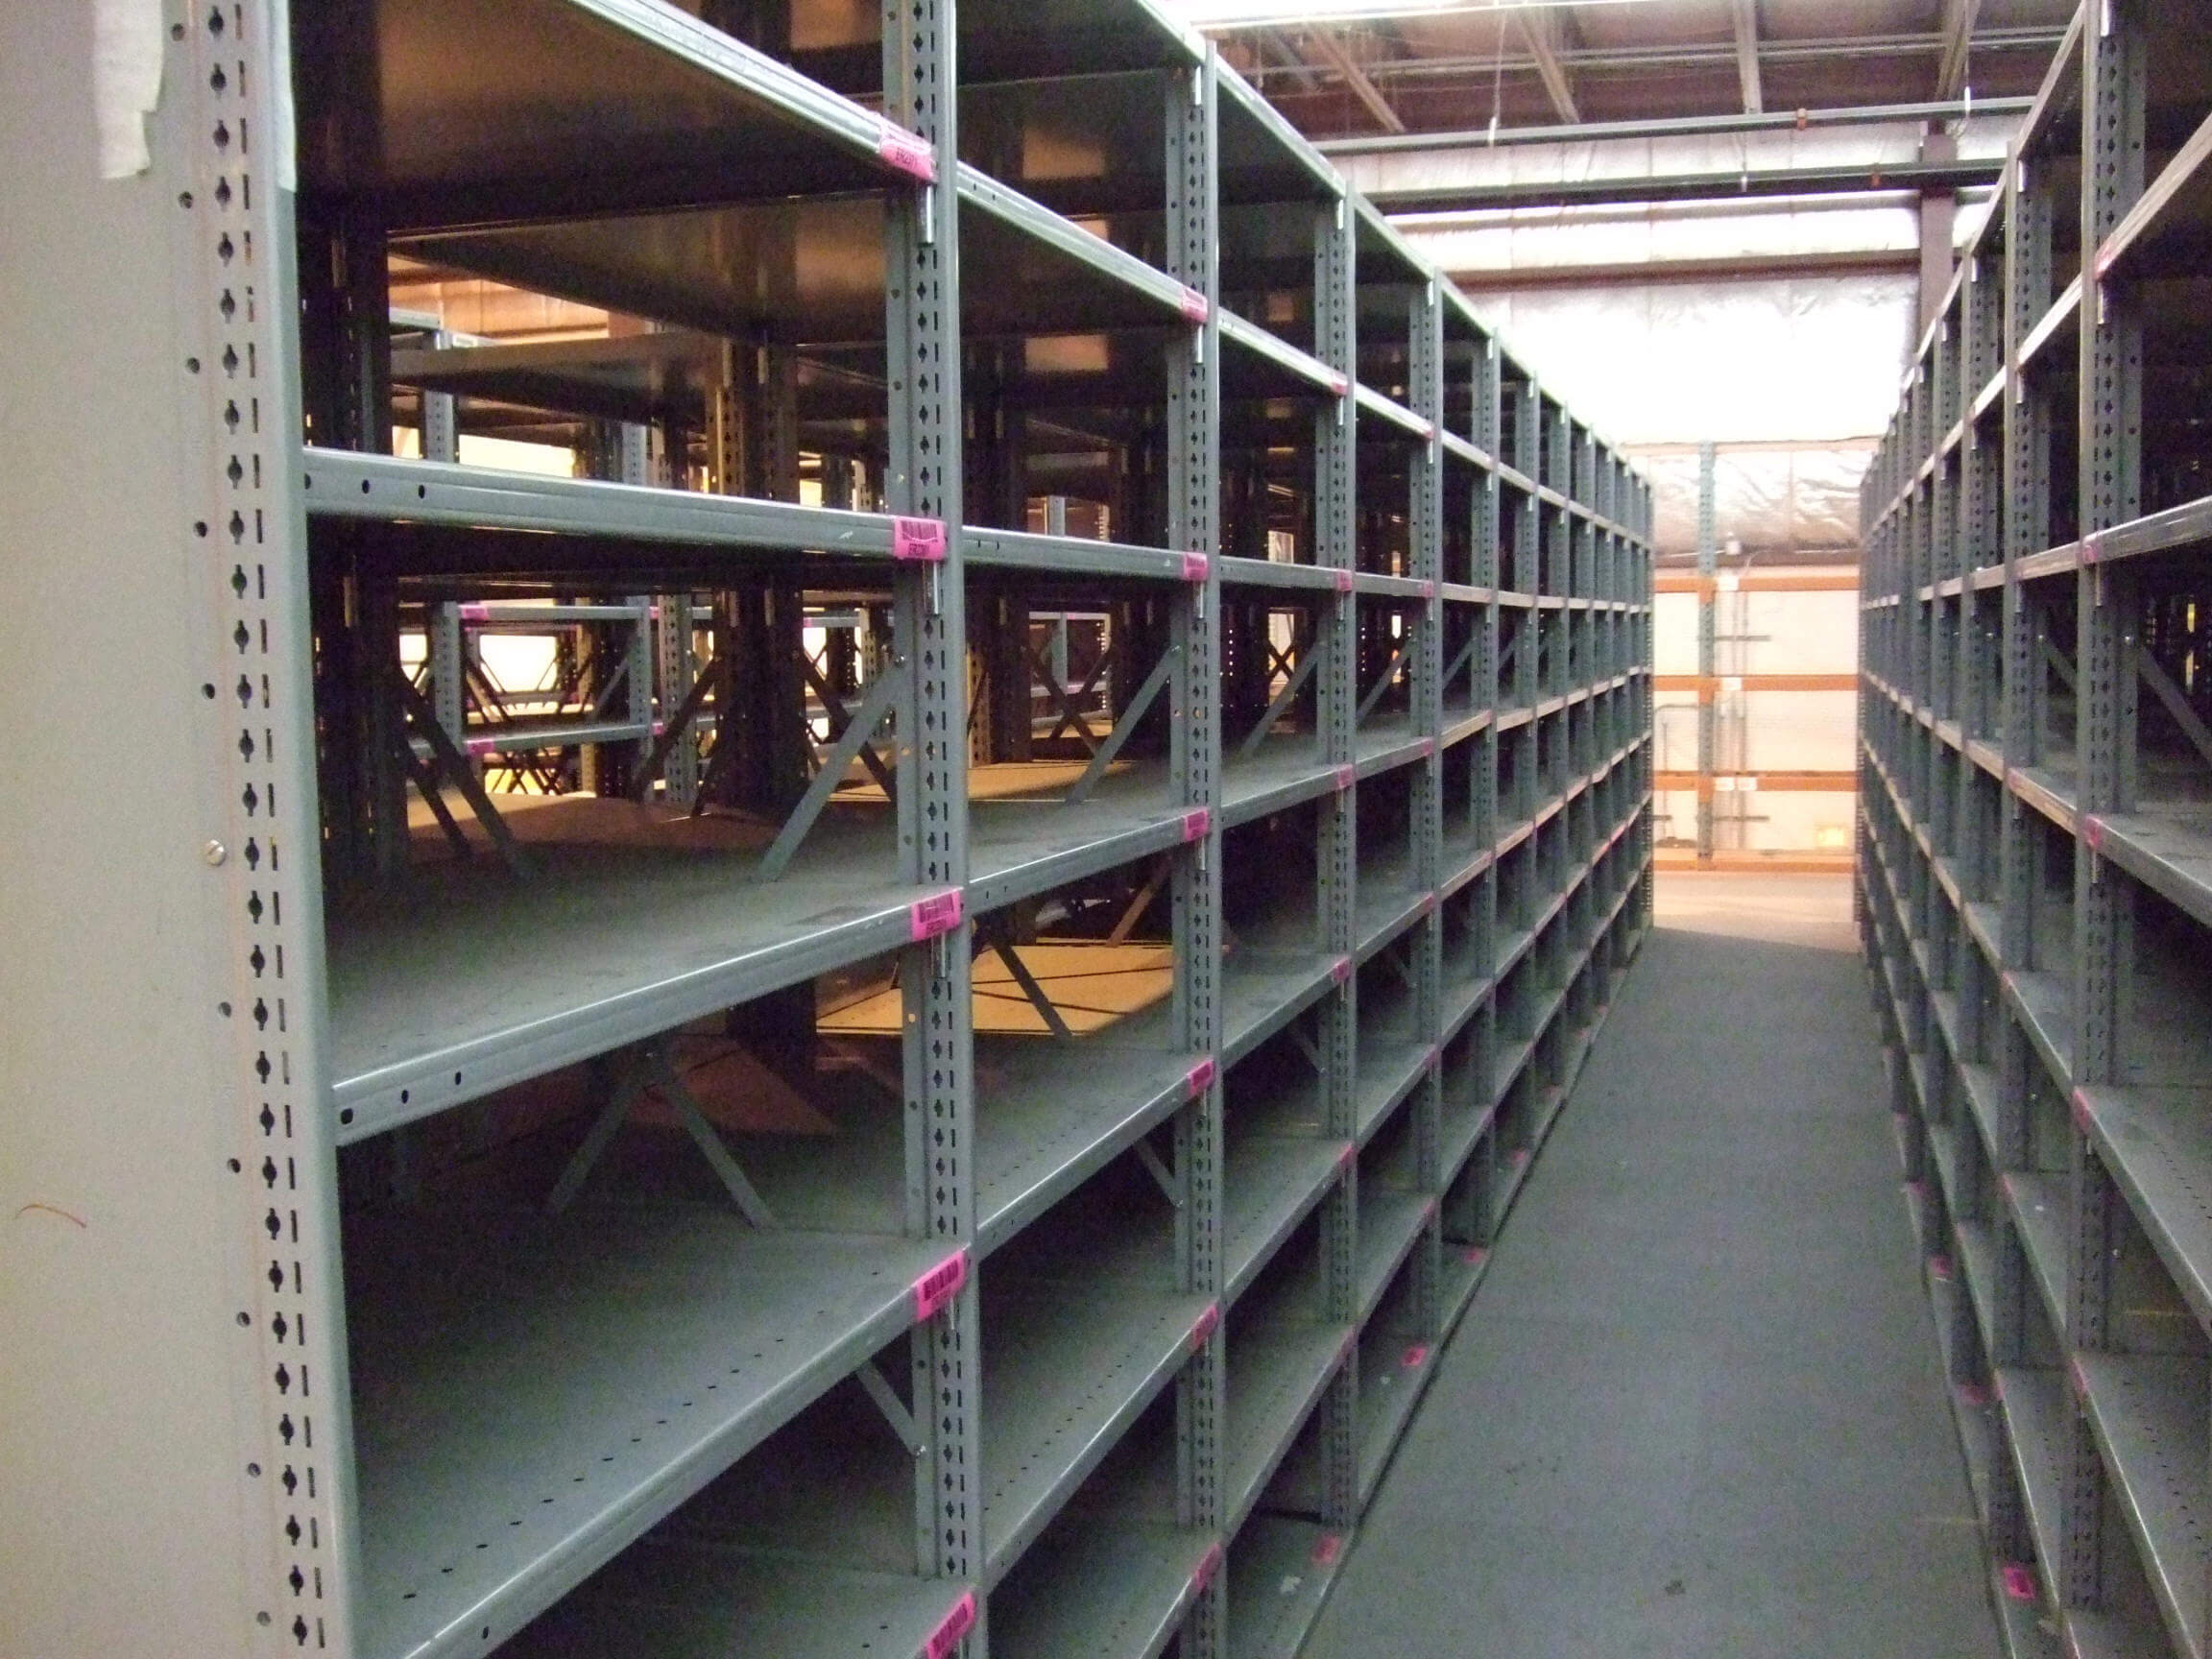 Krost used storage equipment